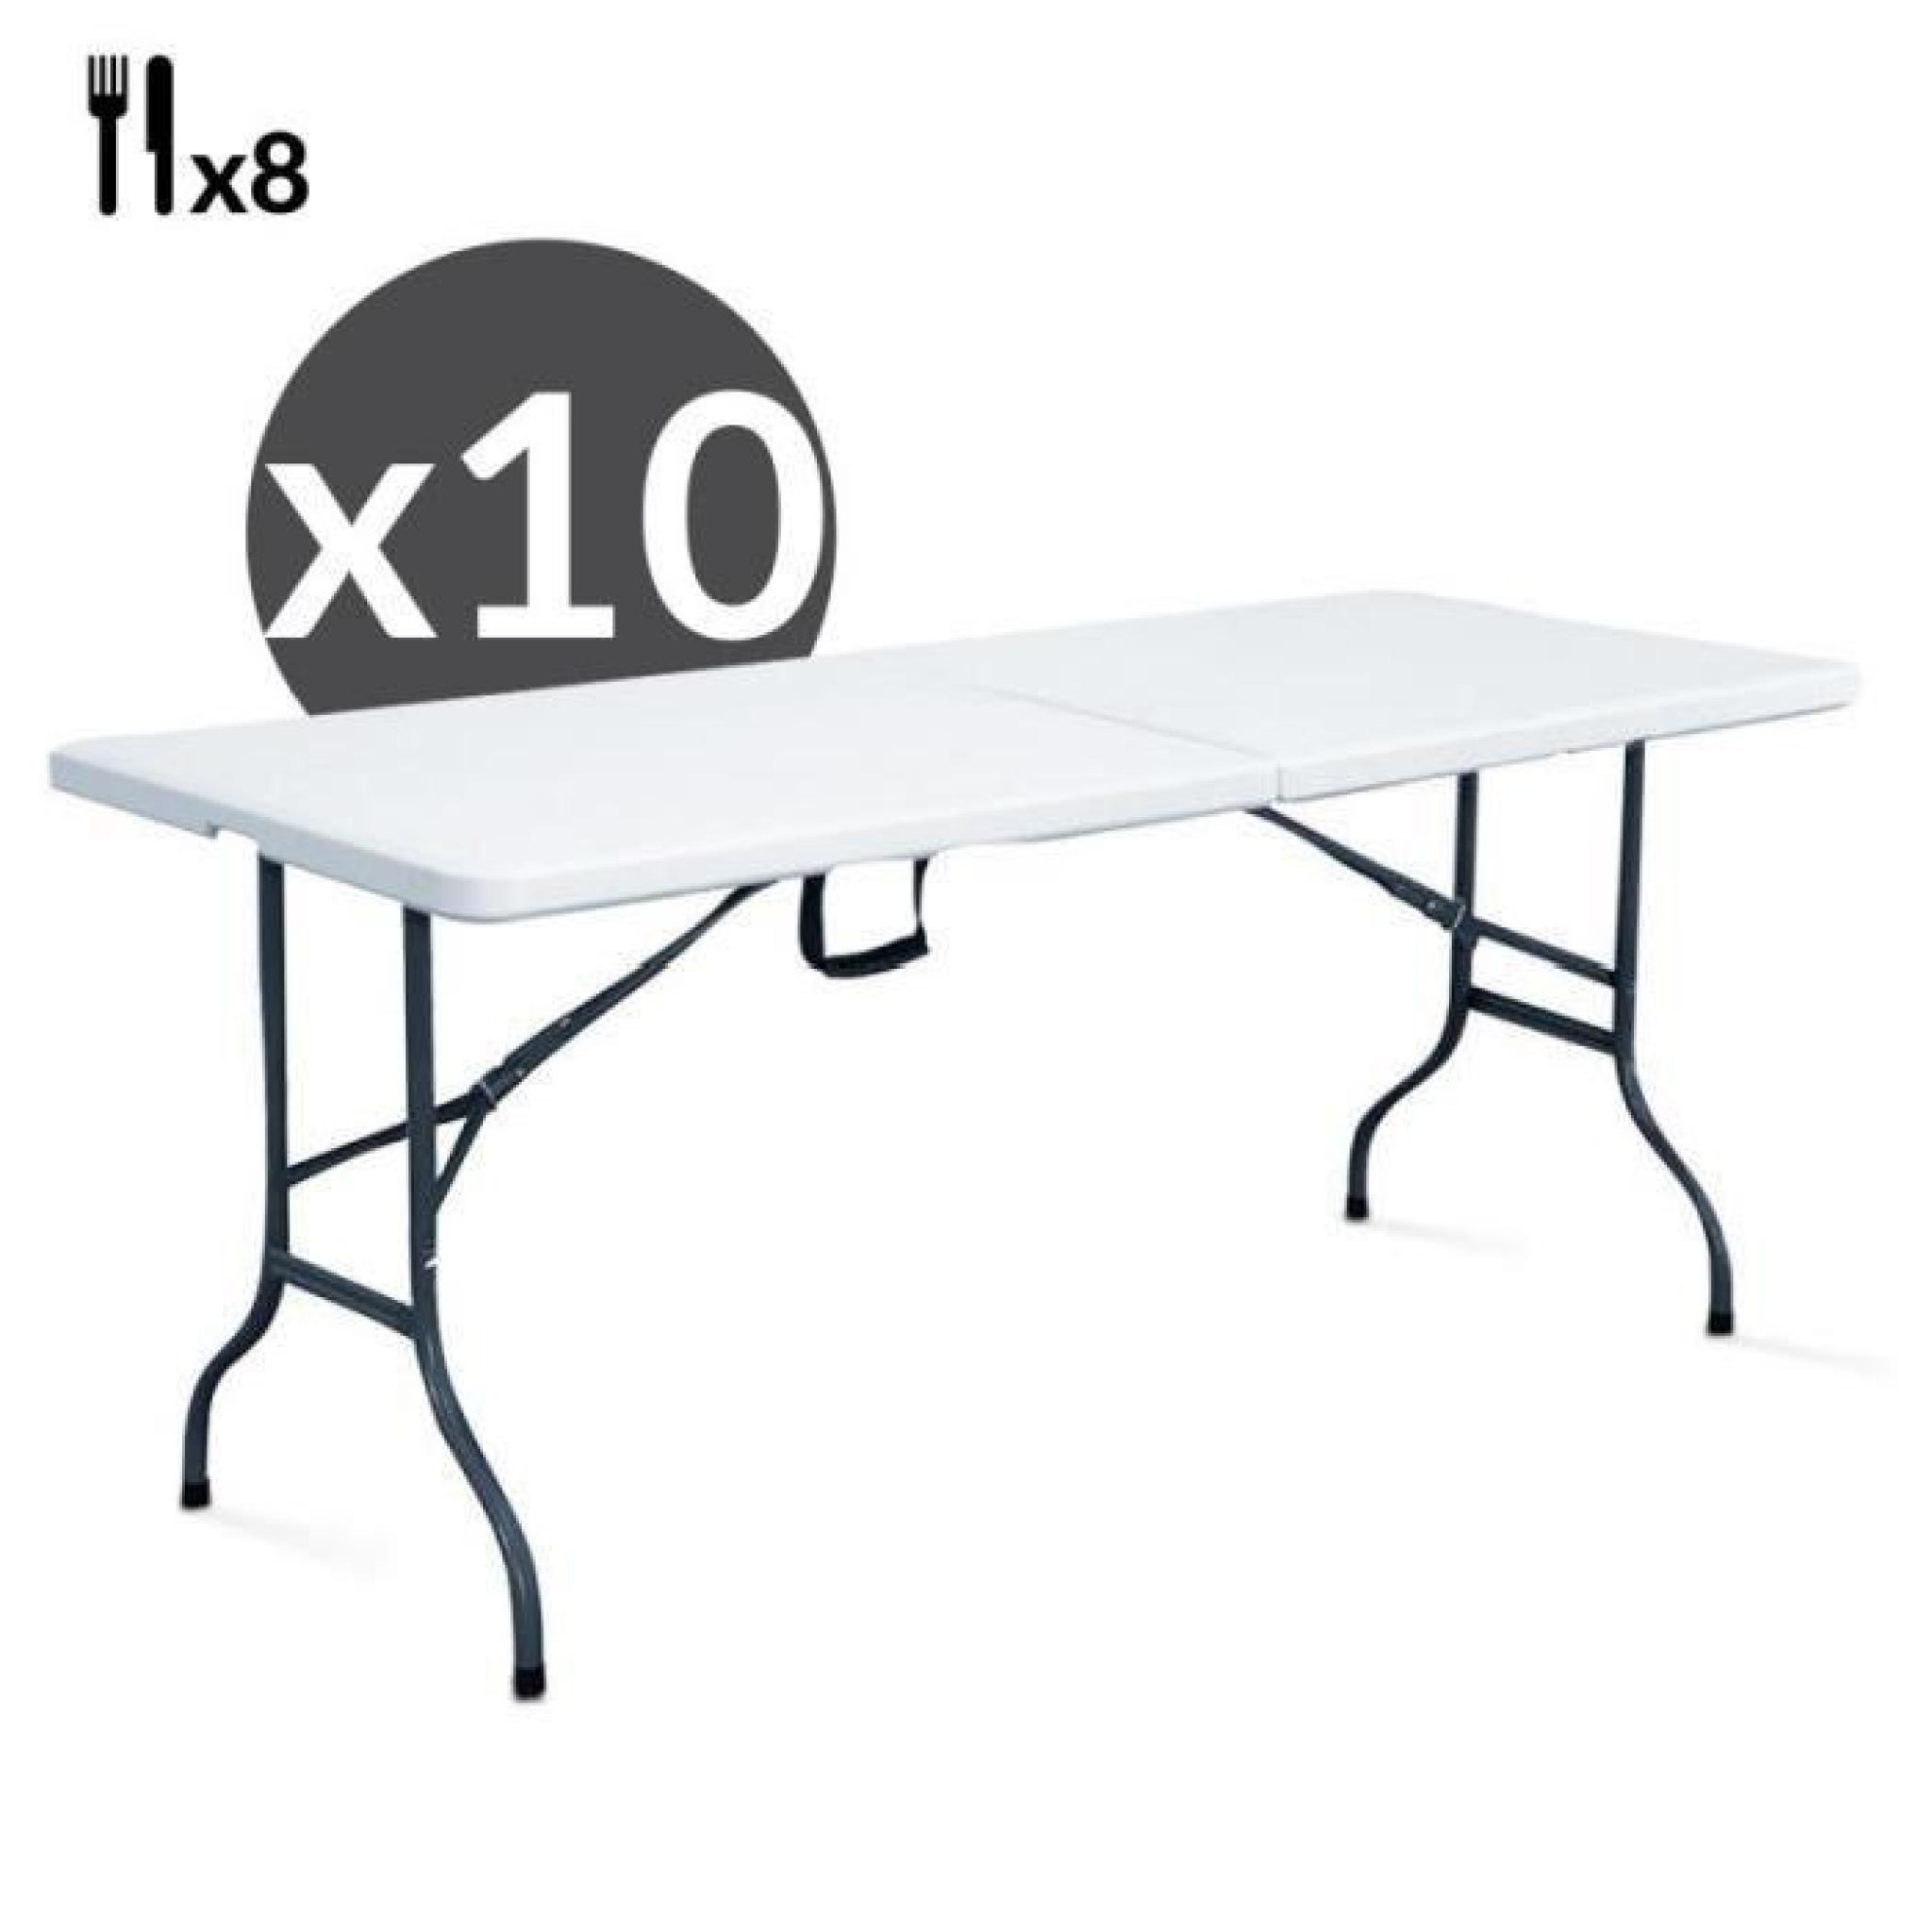 Table Pliante De Jardin Pas Cher Table Pliante Traiteur 180 Cm Lot De 10